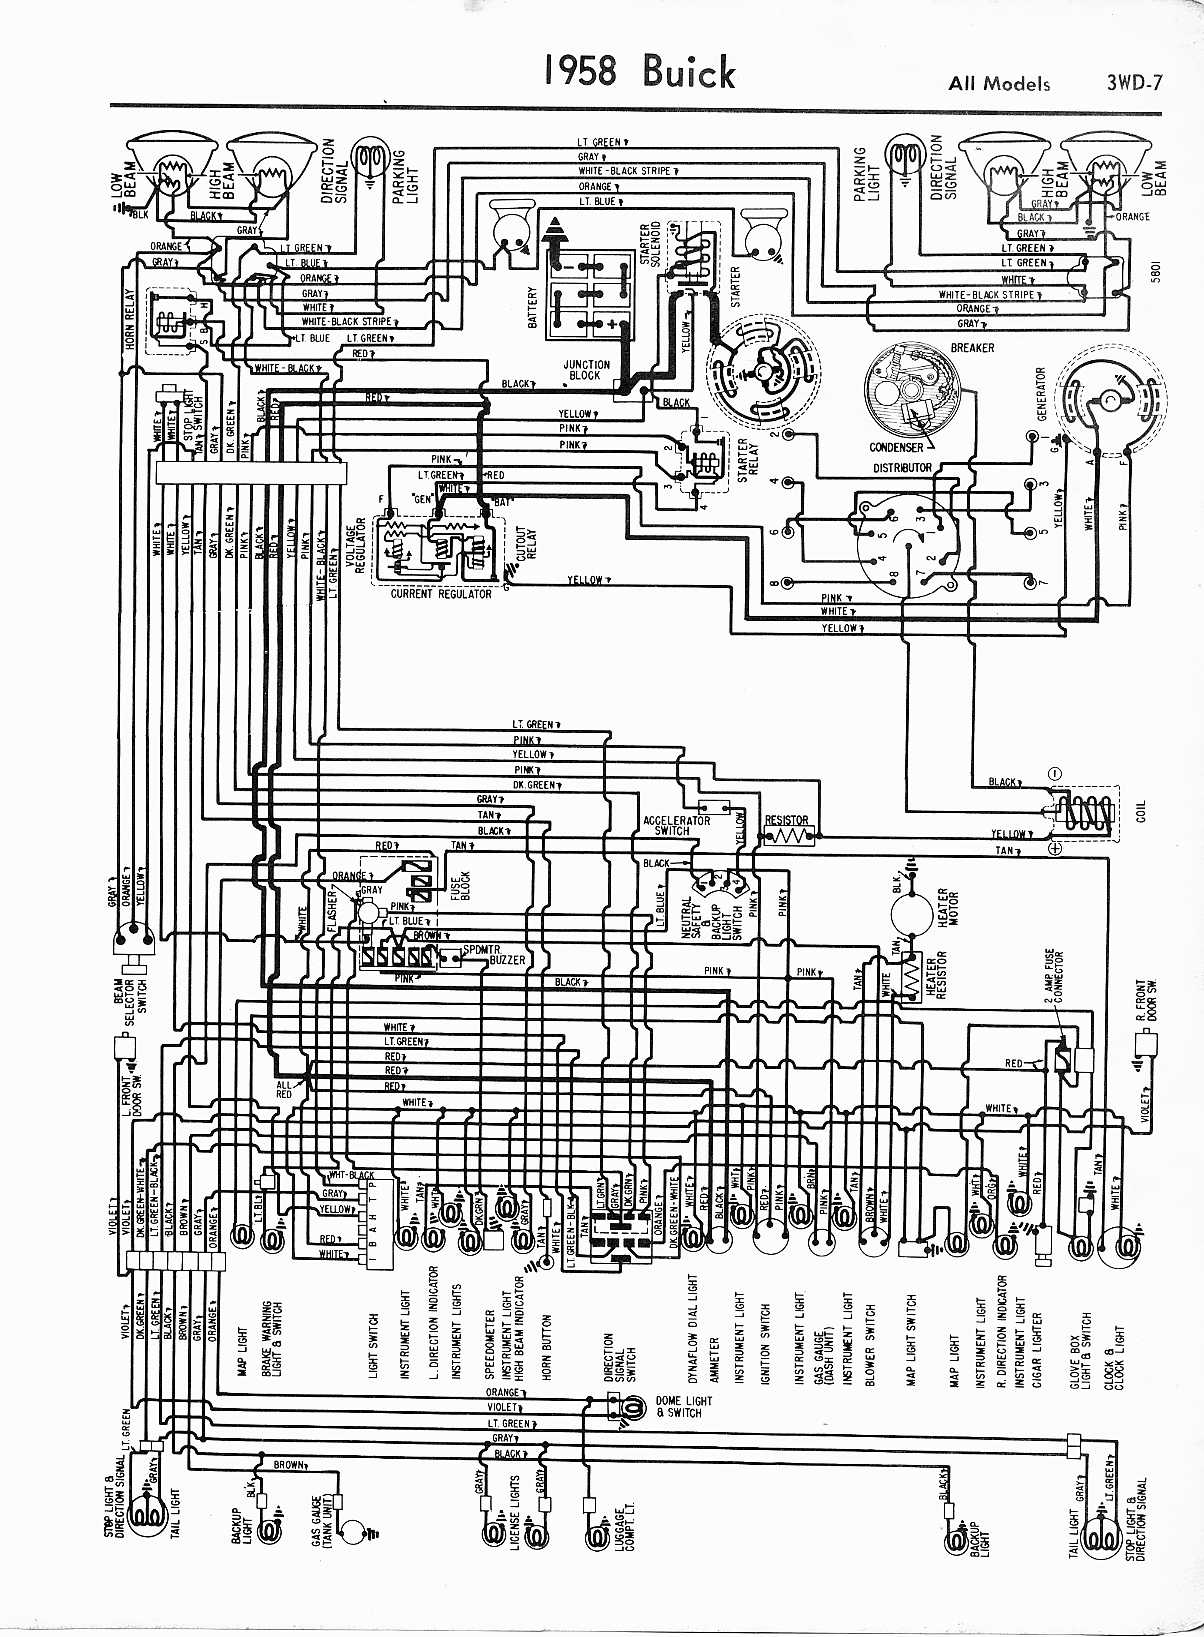 1957 Buick Wiring Diagram Reinvent Your 2000 Images Gallery